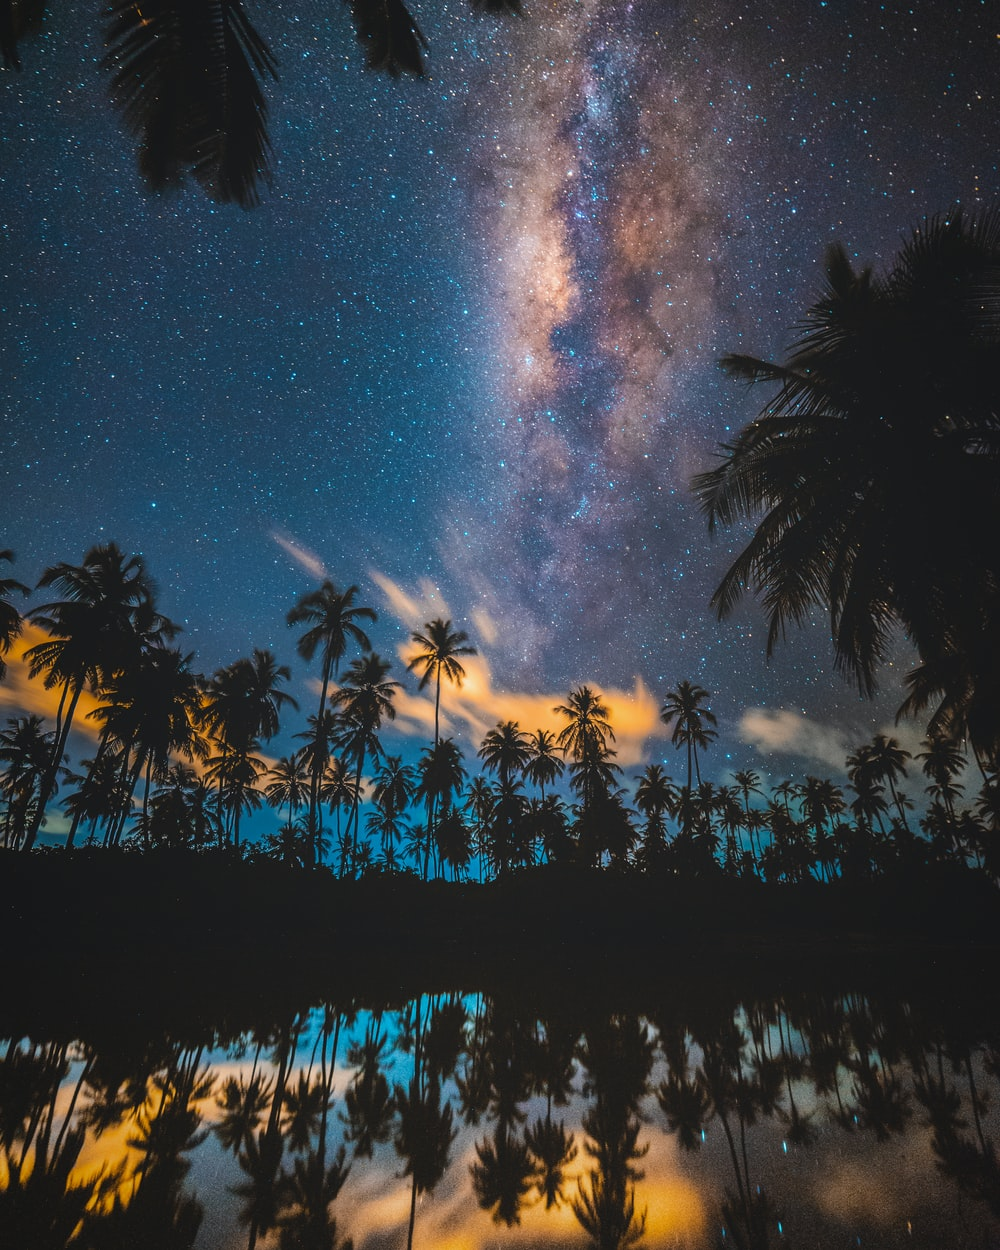 silhouette of coconut trees reflected on body of water